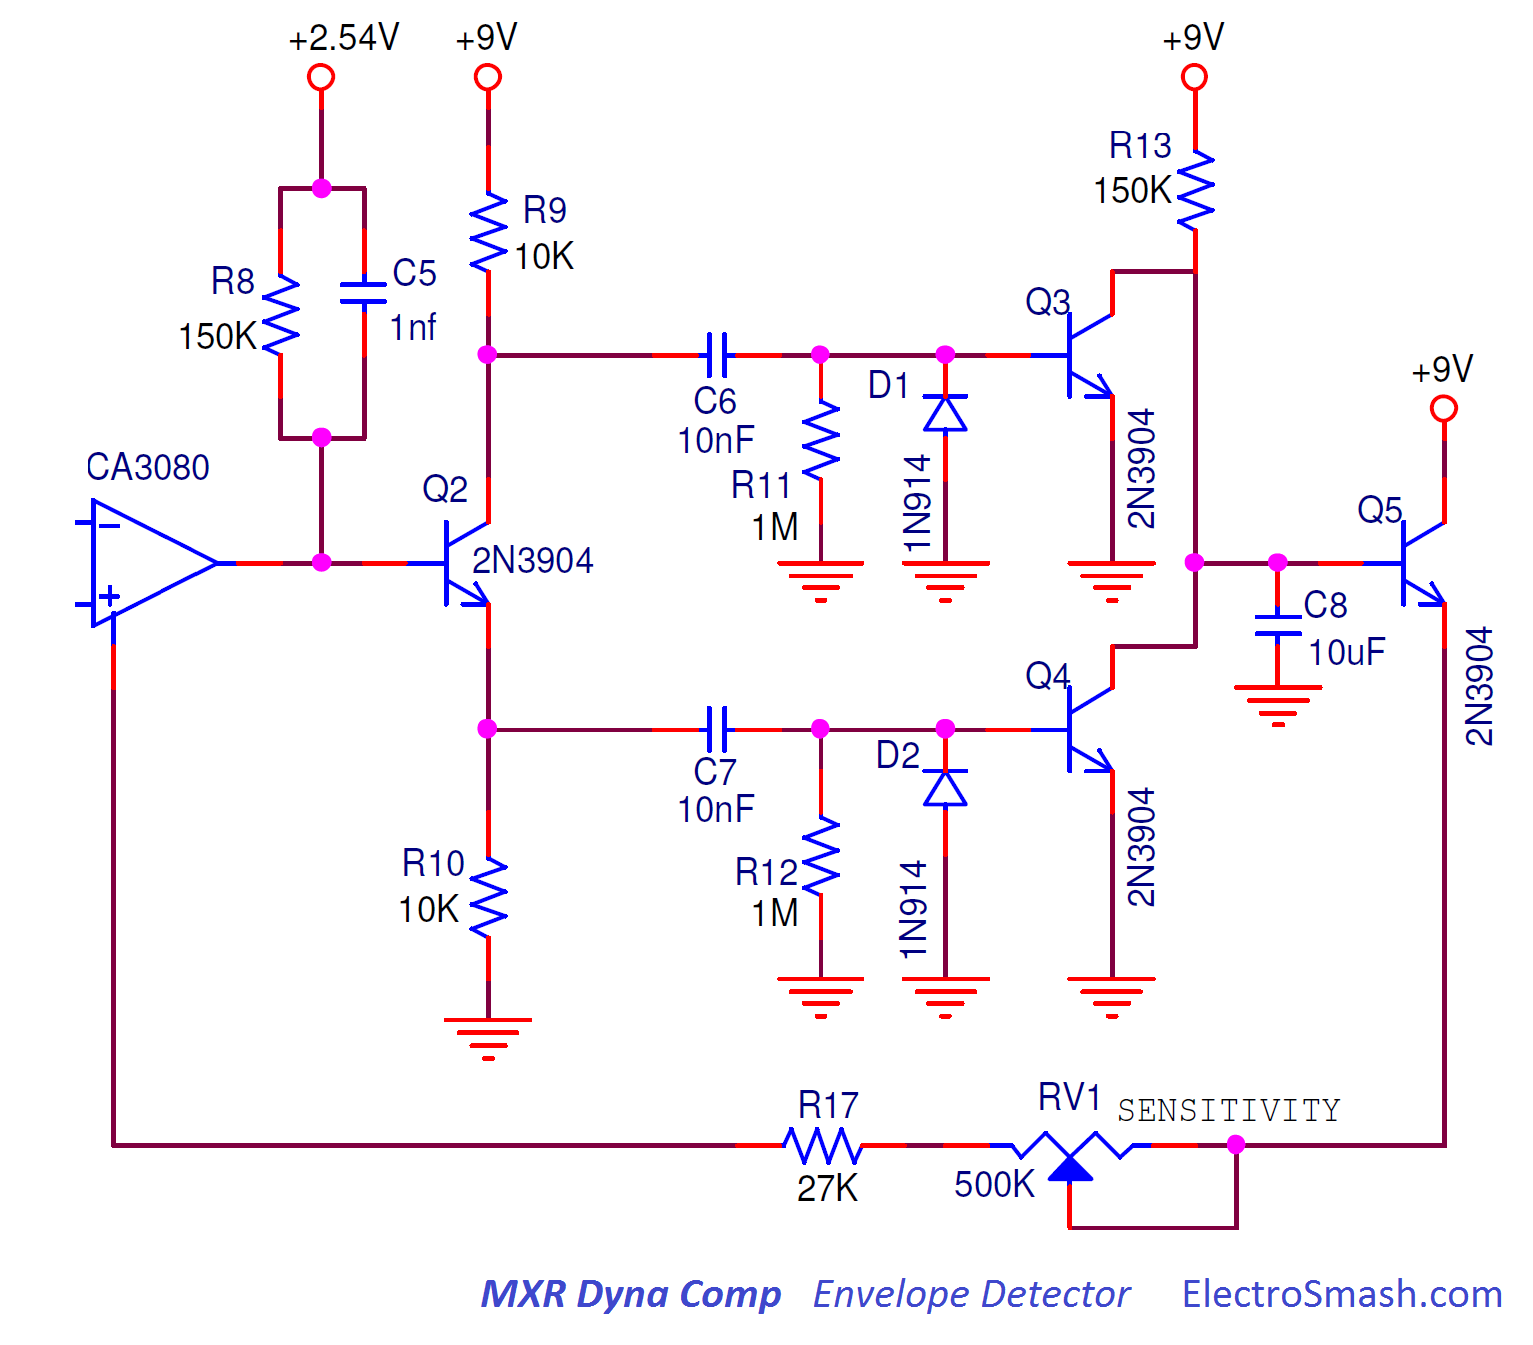 Electrosmash Mxr Dyna Comp Analysis Figure 2 Passive Envelope Detector Circuit